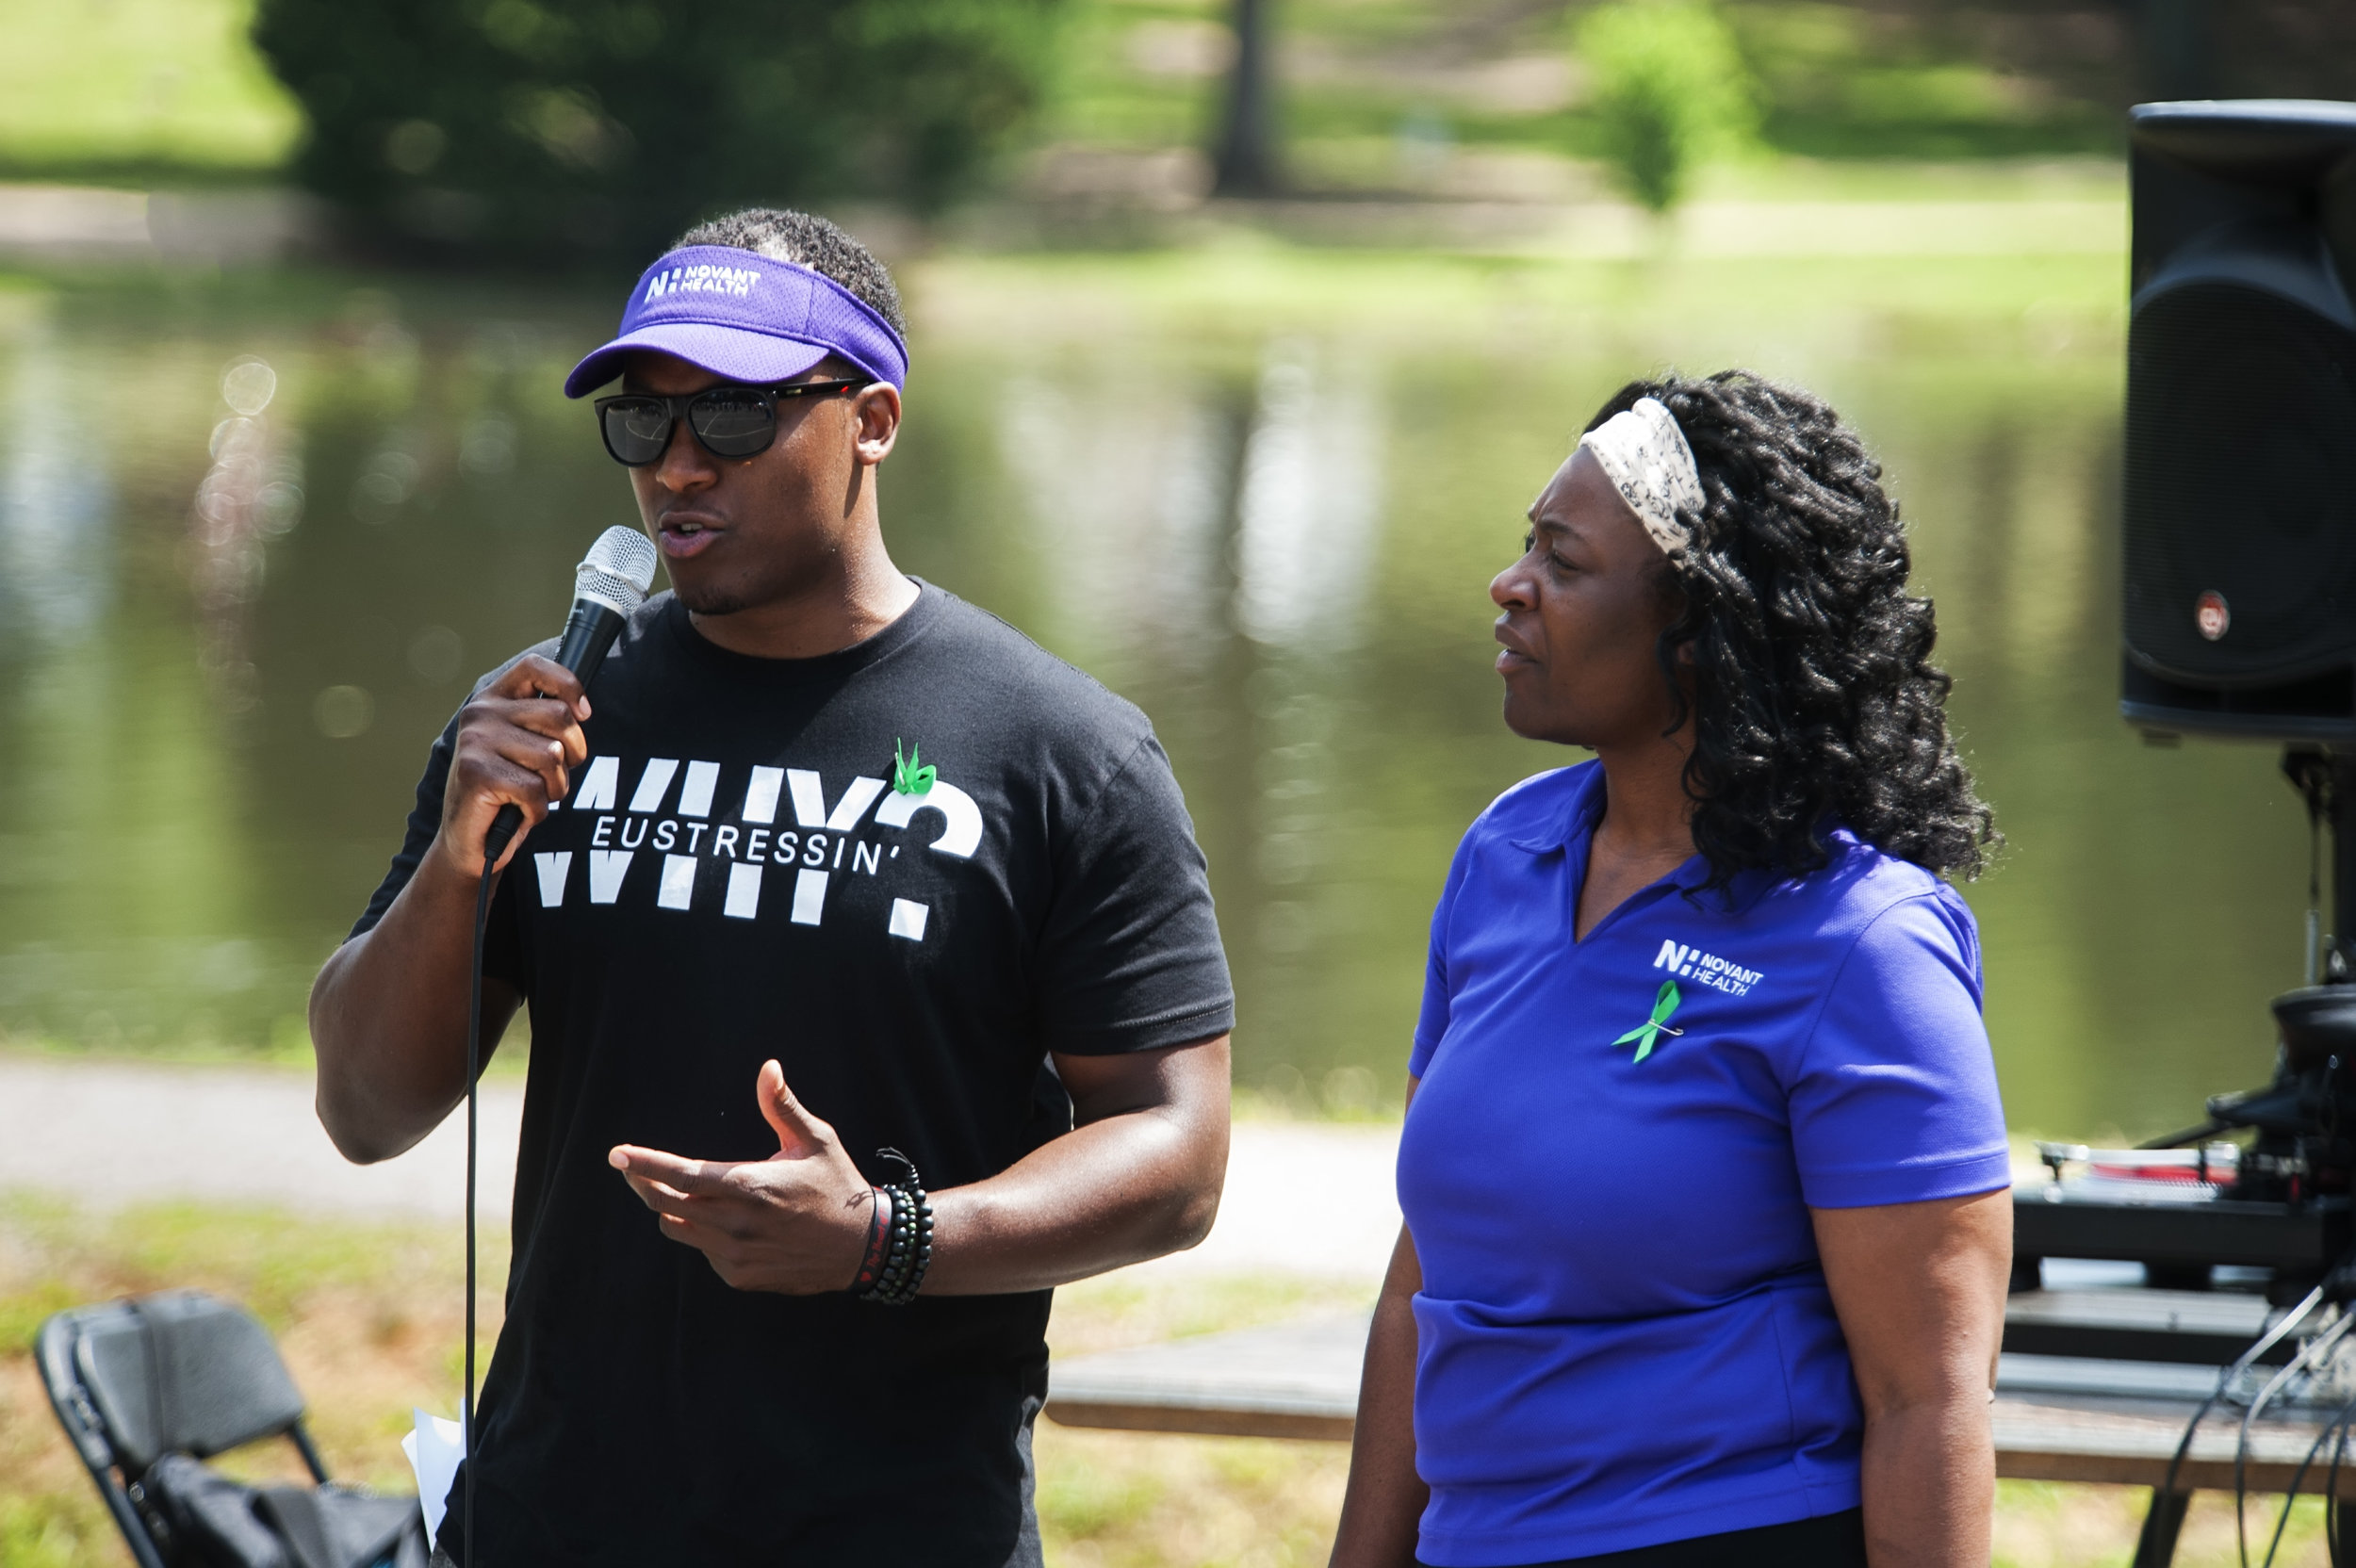 2nd Annual Let's Talk About It Mental Health Awareness Walk @ Park Rd Park 5-20-17 by Jon Strayhorn 142.jpg